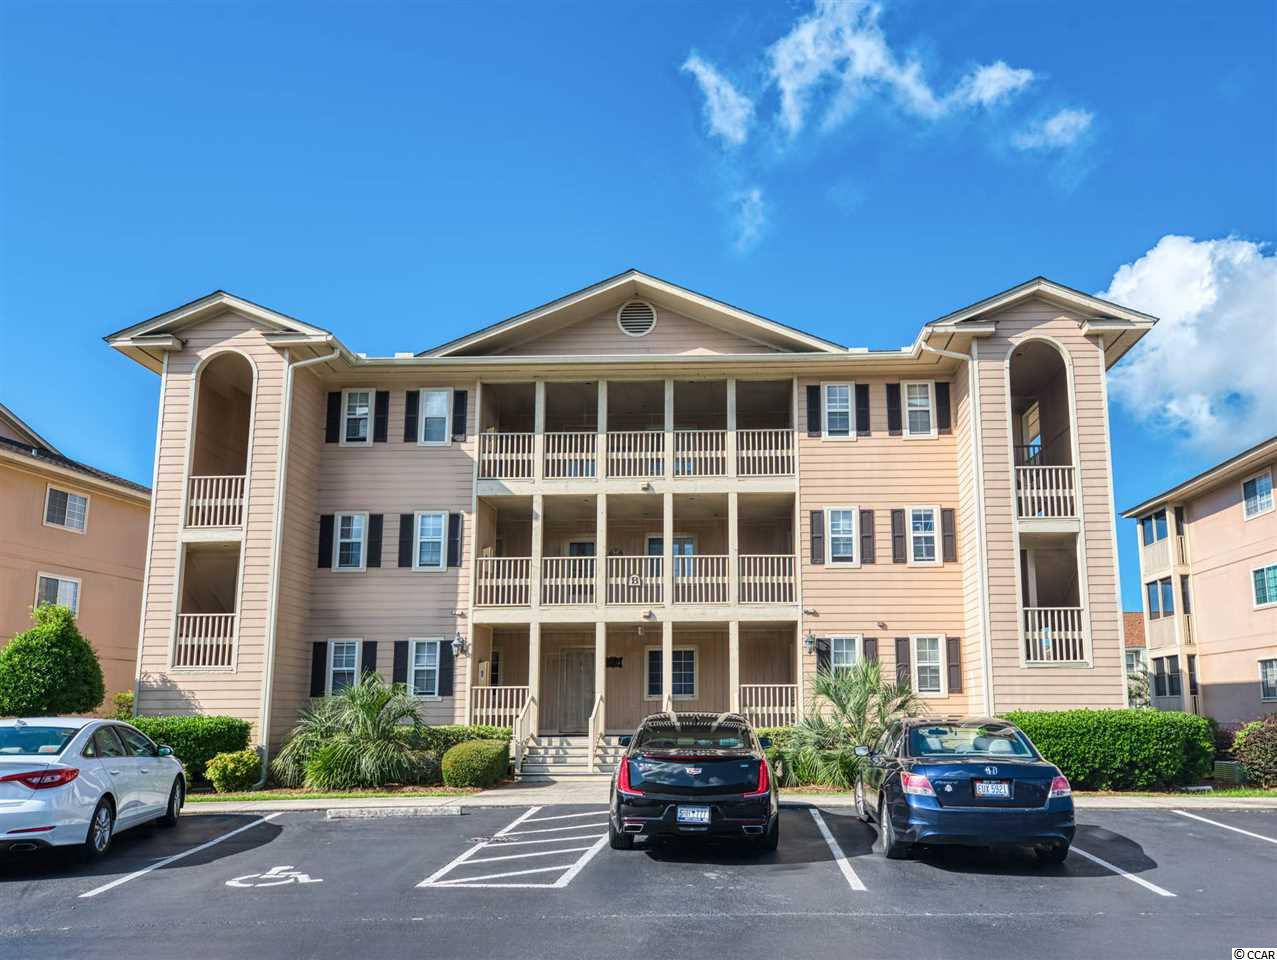 Wow! Check out this awesome 1 bedroom 1 bathroom unit on the ground floor in the highly desired Cherry Grove section of North Myrtle Beach. The screen porch has been completely closed in with vinyl windows allowing this room to be enjoyed year round. A large storage unit is just across the hall for all your beach gear and golf clubs. Take advantage off this great opportunity today.